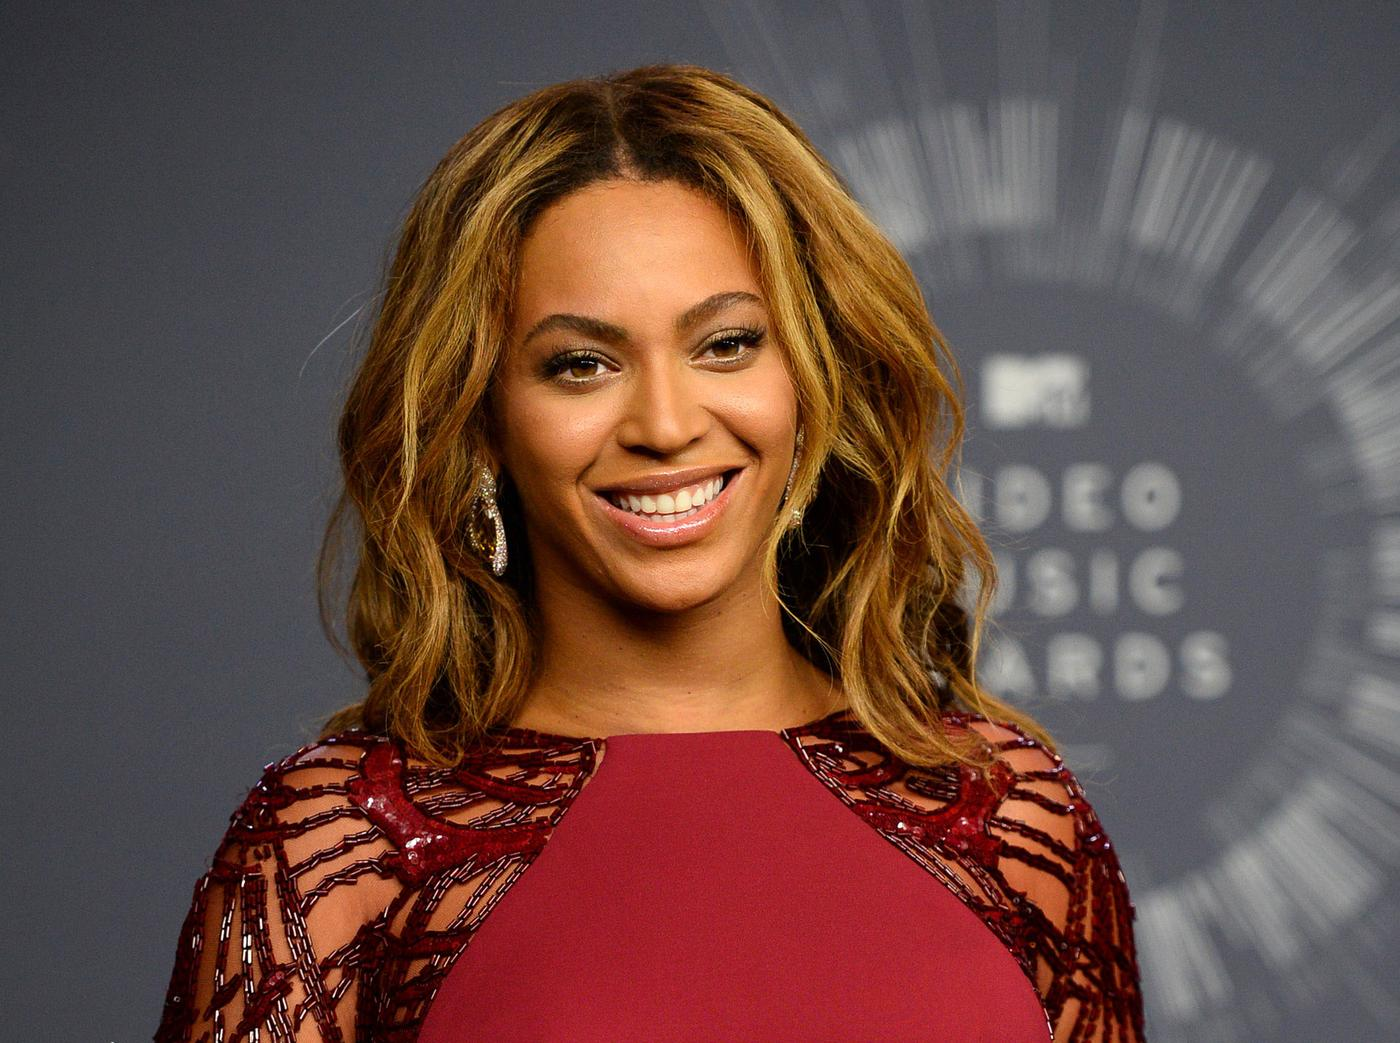 Beyonce has launched a vegan food delivery service